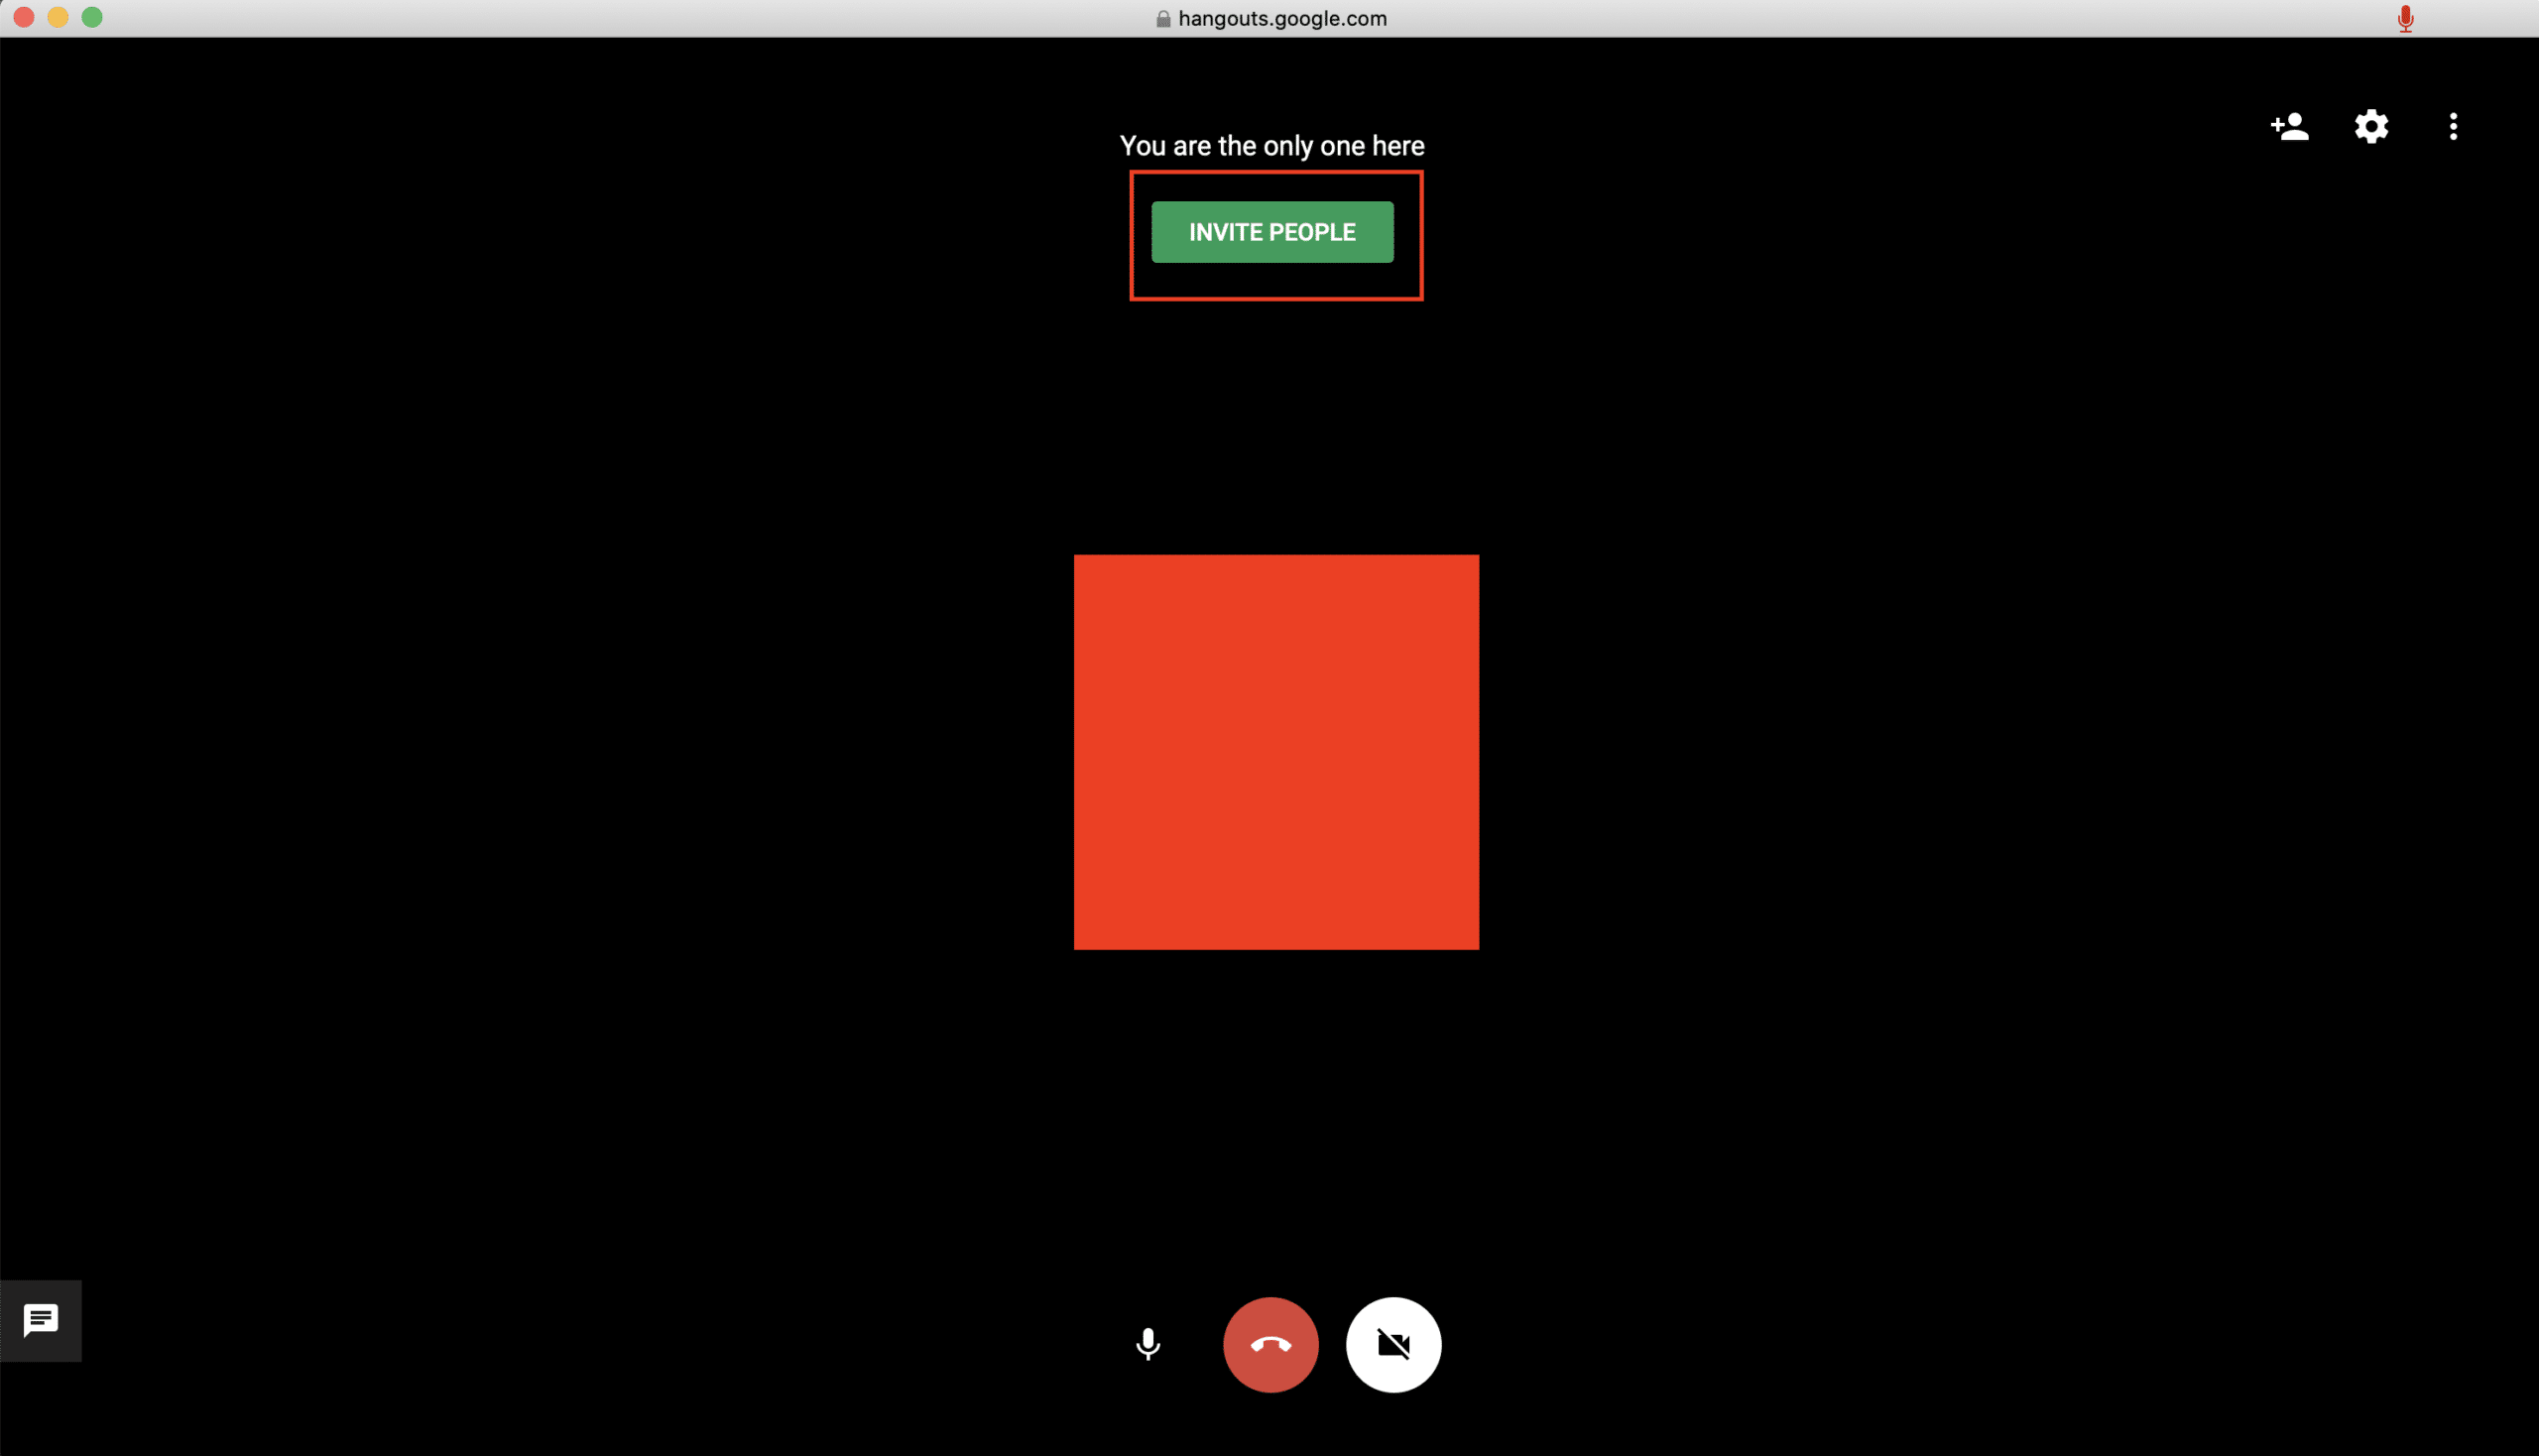 How to share your screen on Google Meet (Hangouts)